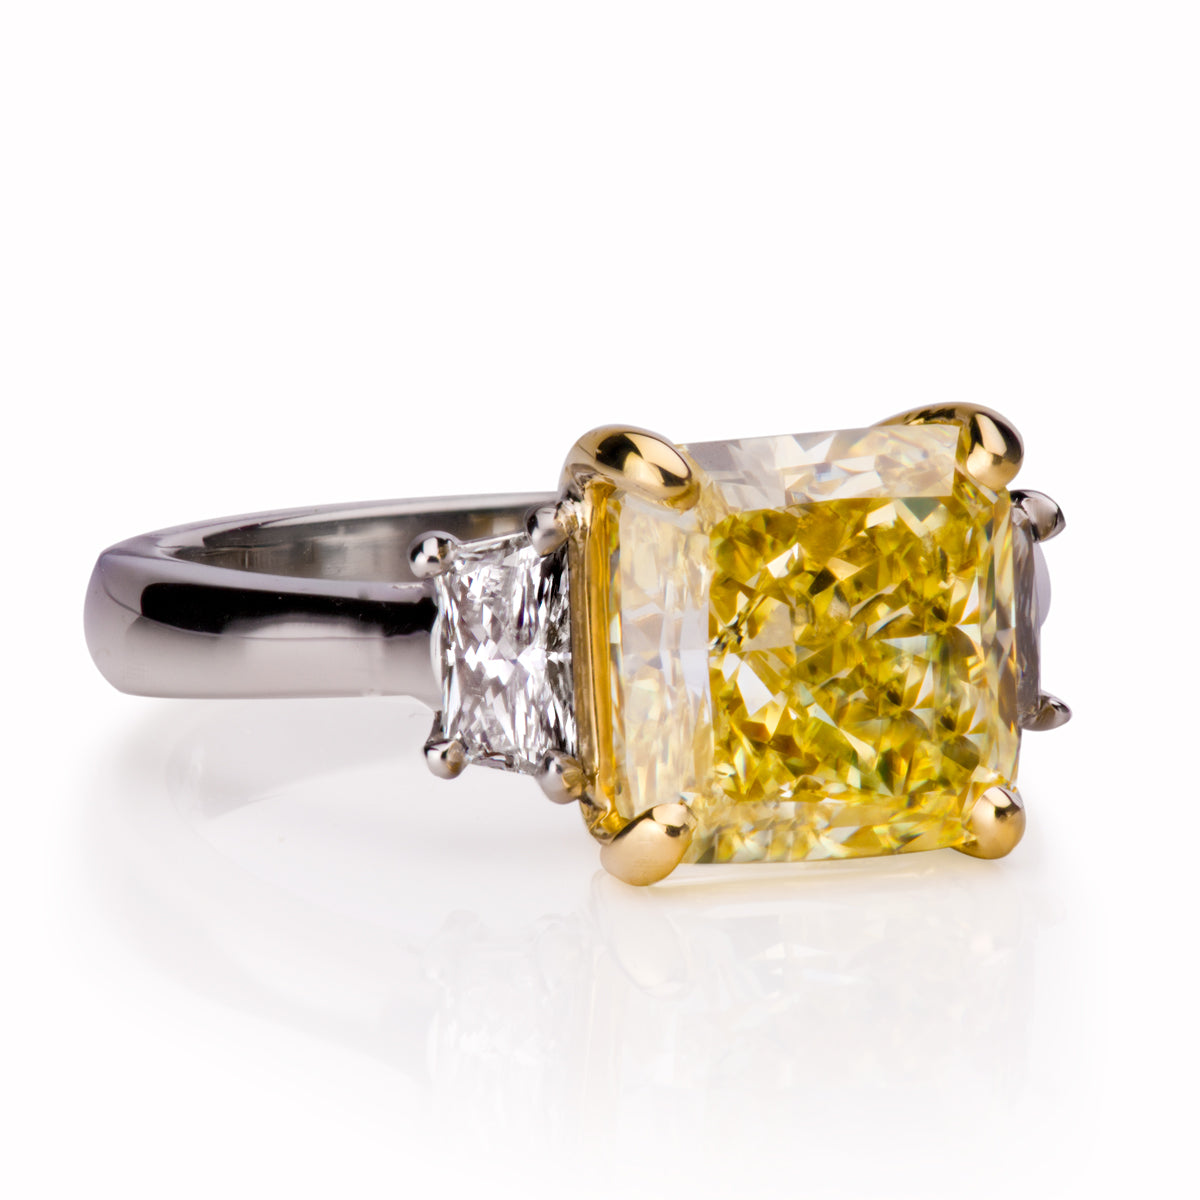 3 stone diamond ring with radiant cut fancy yellow diamond accented with 2 trapezoid cut white diamonds created by Davidson Jewels